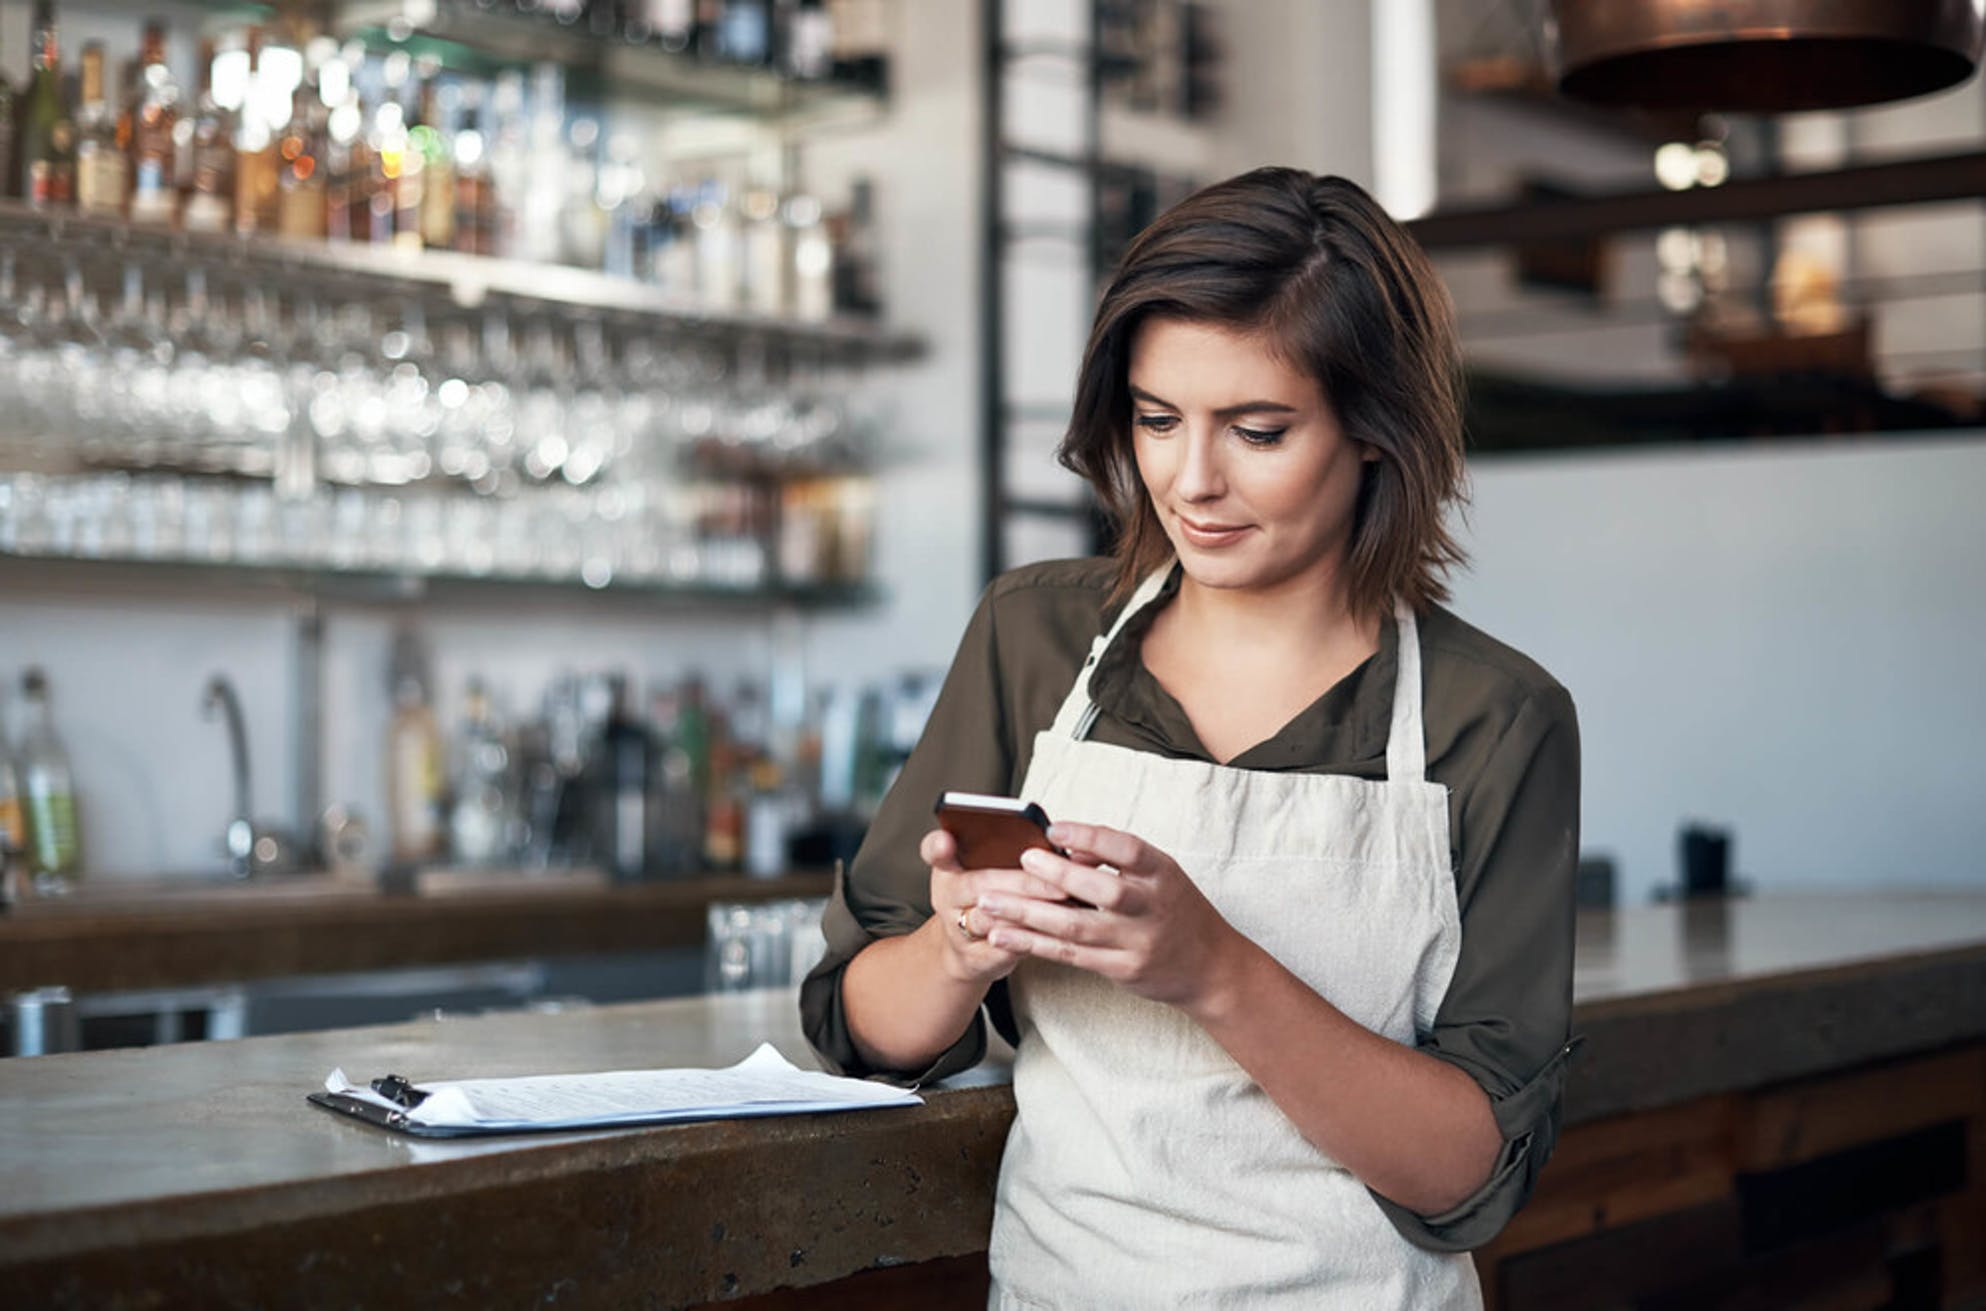 budgeting when you work for tips: server tracking expenses with app